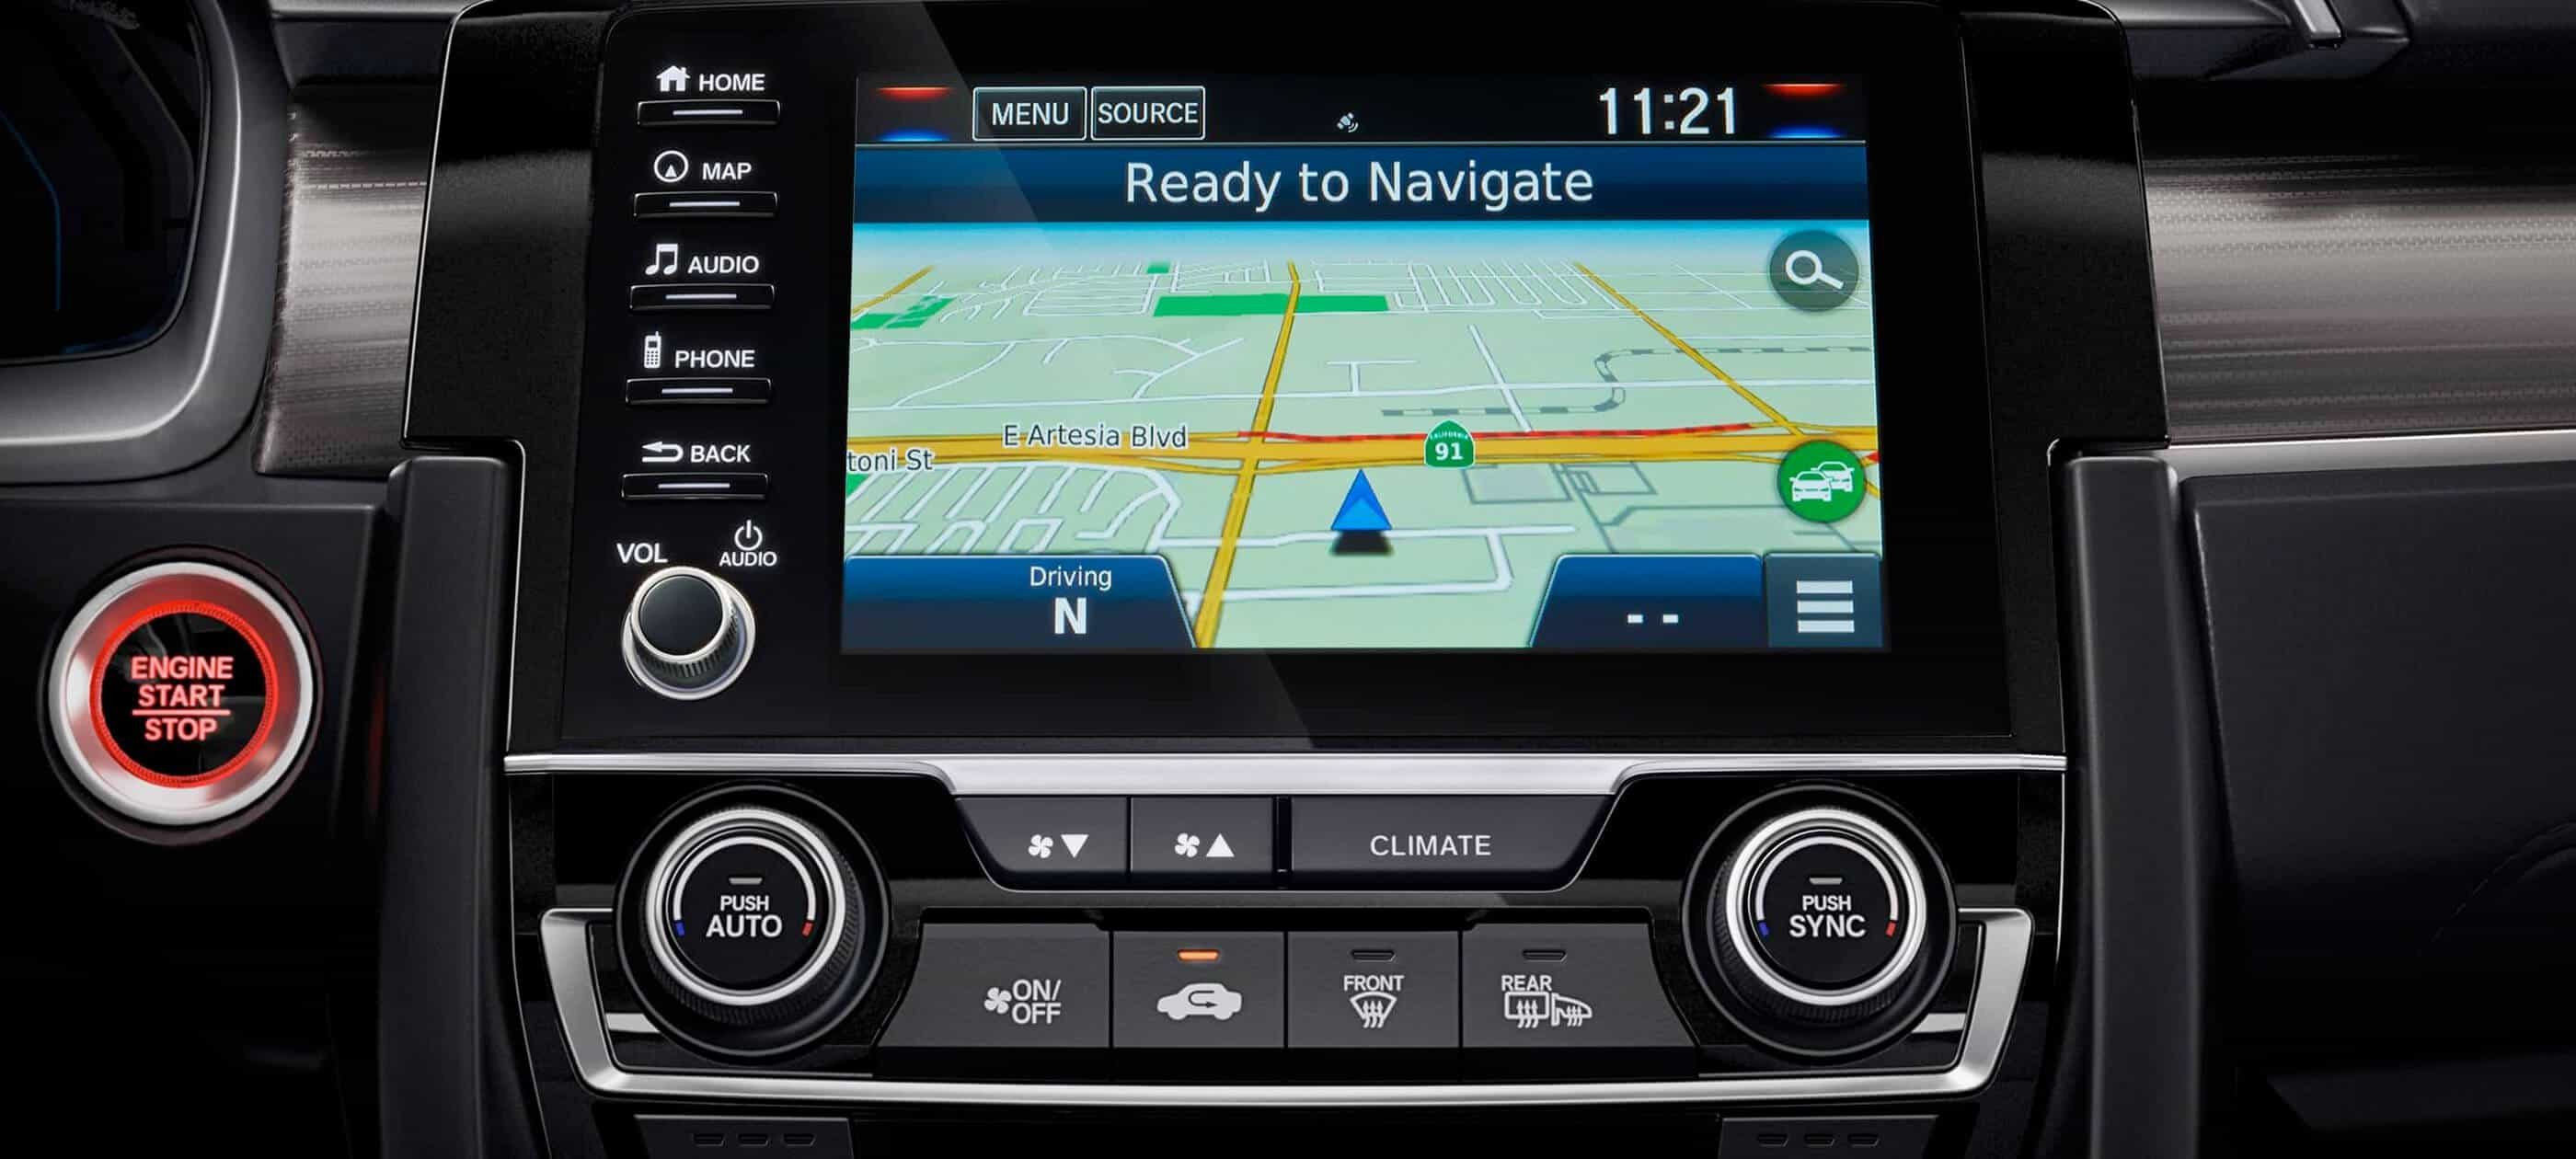 Honda Satellite-Linked Navigation System<sup>™</sup>